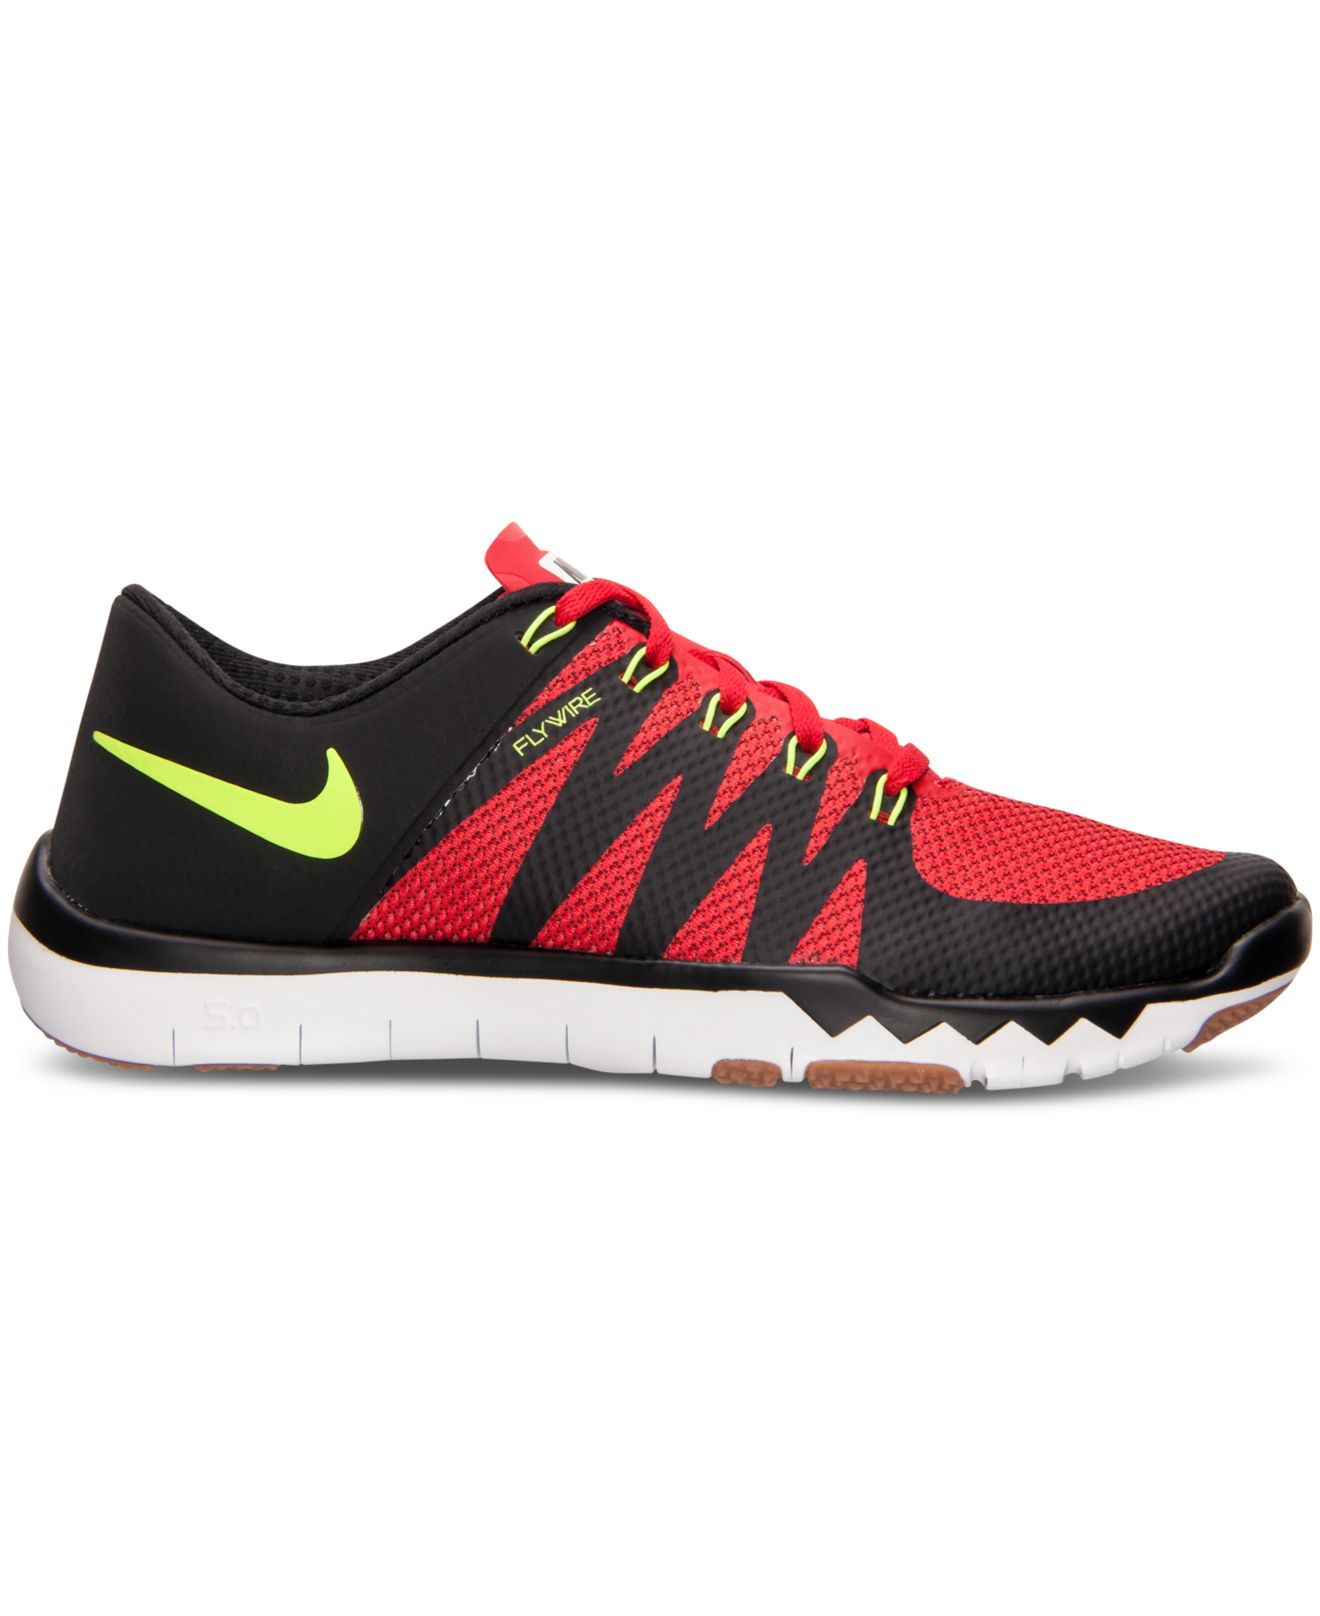 Lyst - Nike Men s Free Trainer 5.0 V6 Training Sneakers From Finish ... 62a6e65ca3